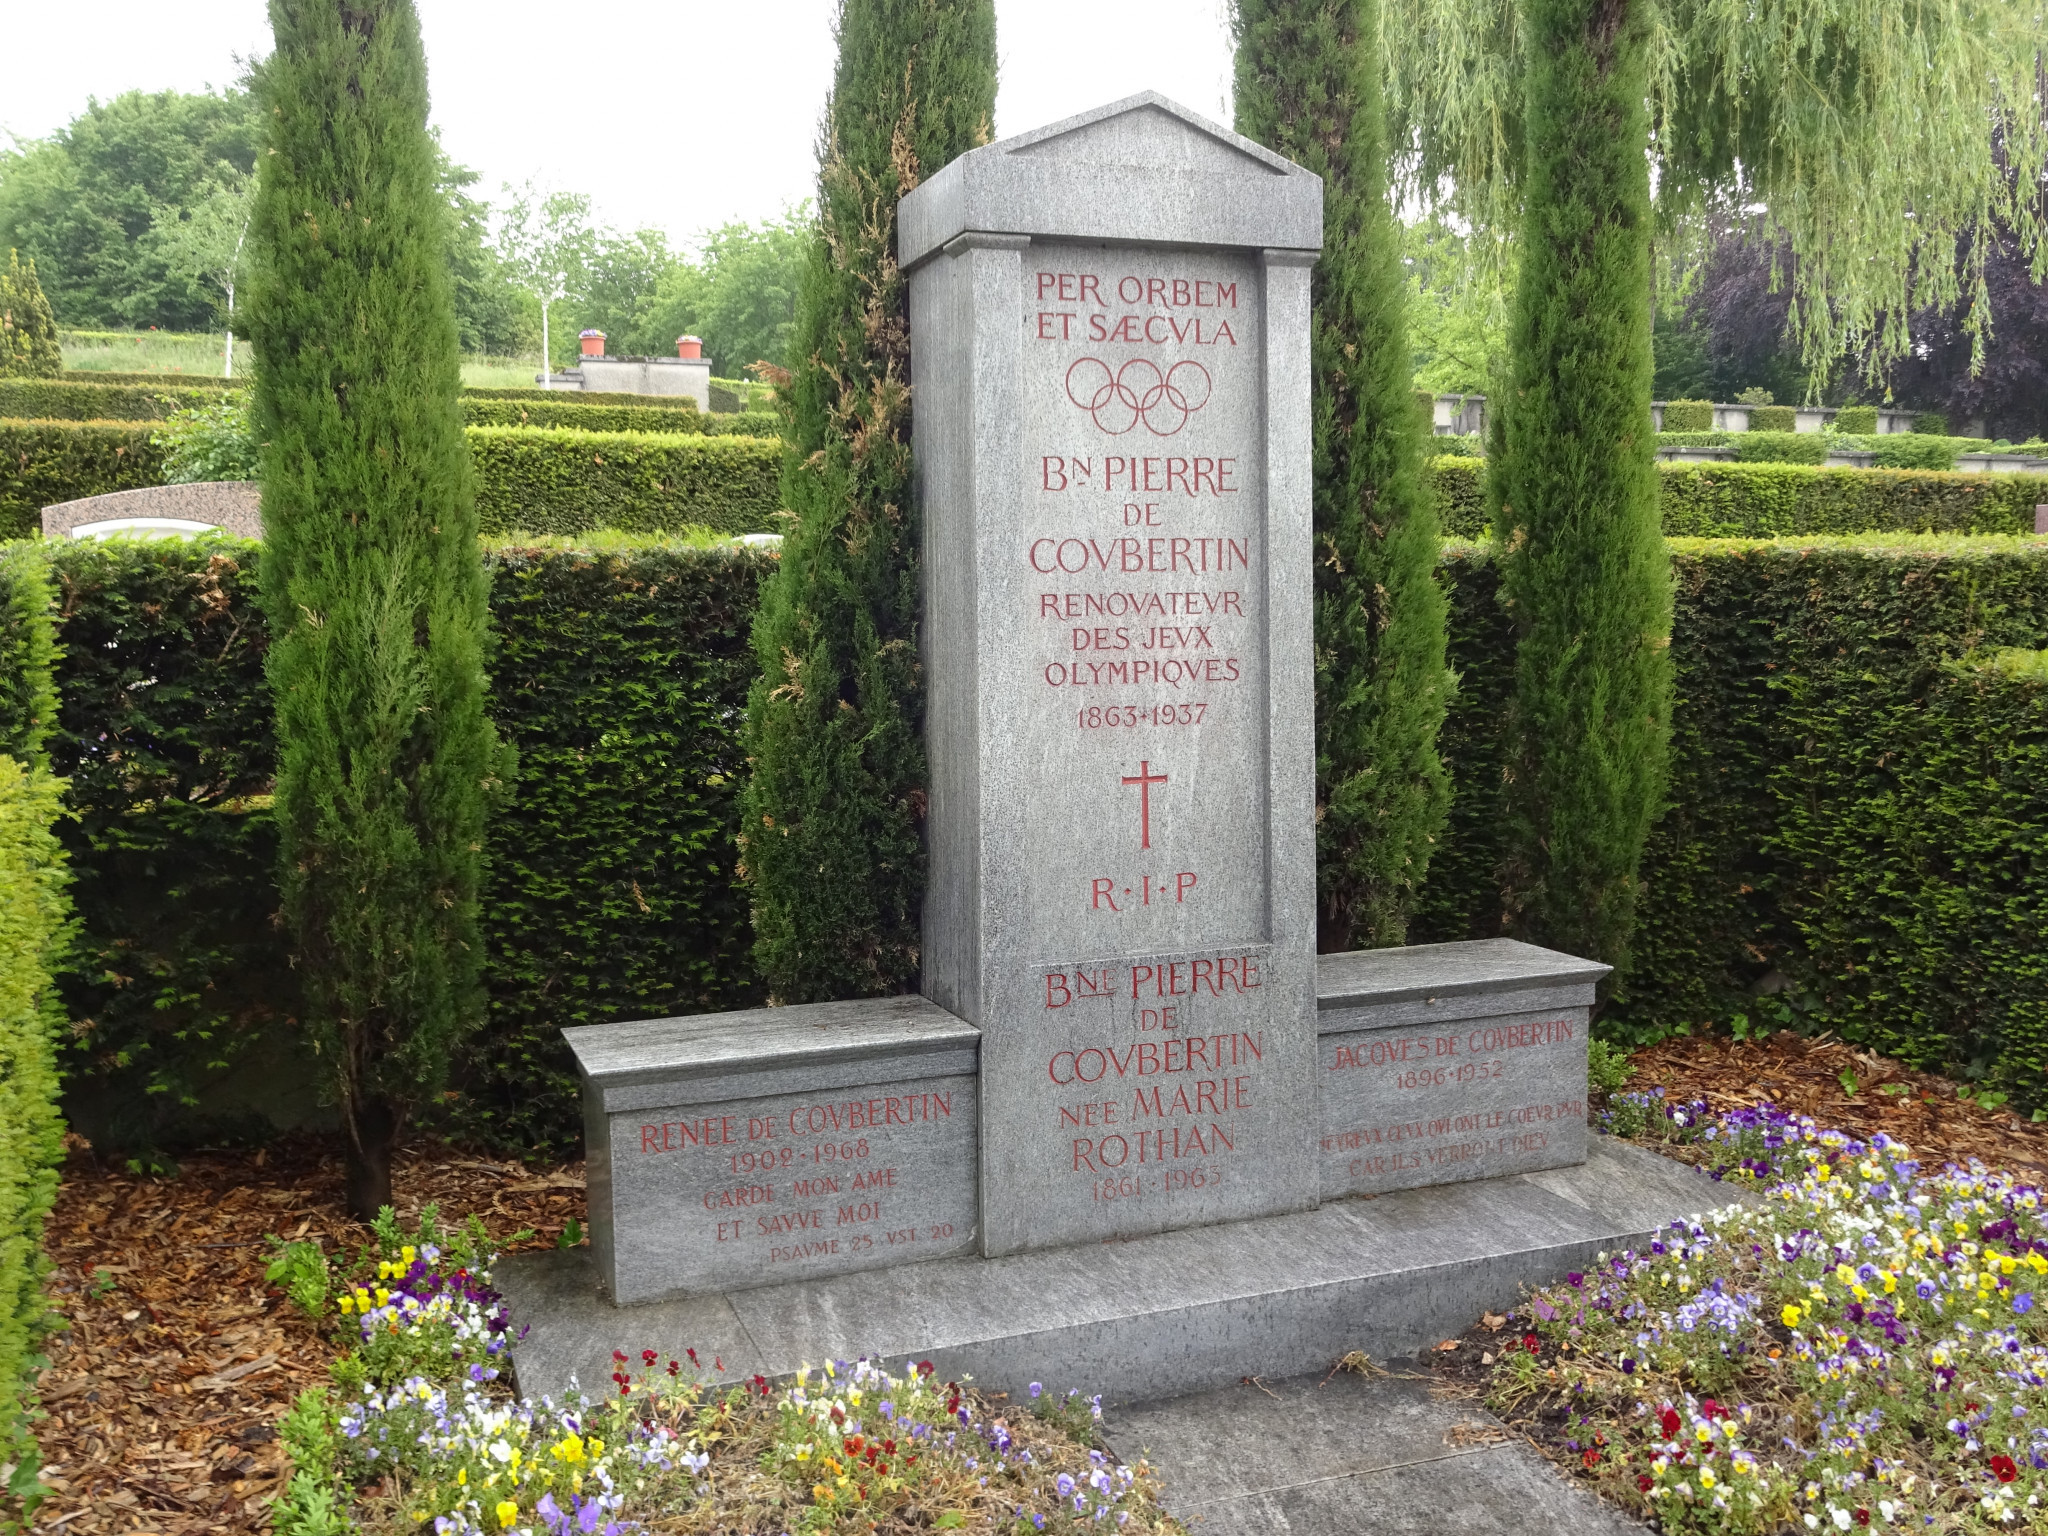 Baron Pierre de Coubertin's final resting place is only a short distance from the IOC headquarters ©ITG